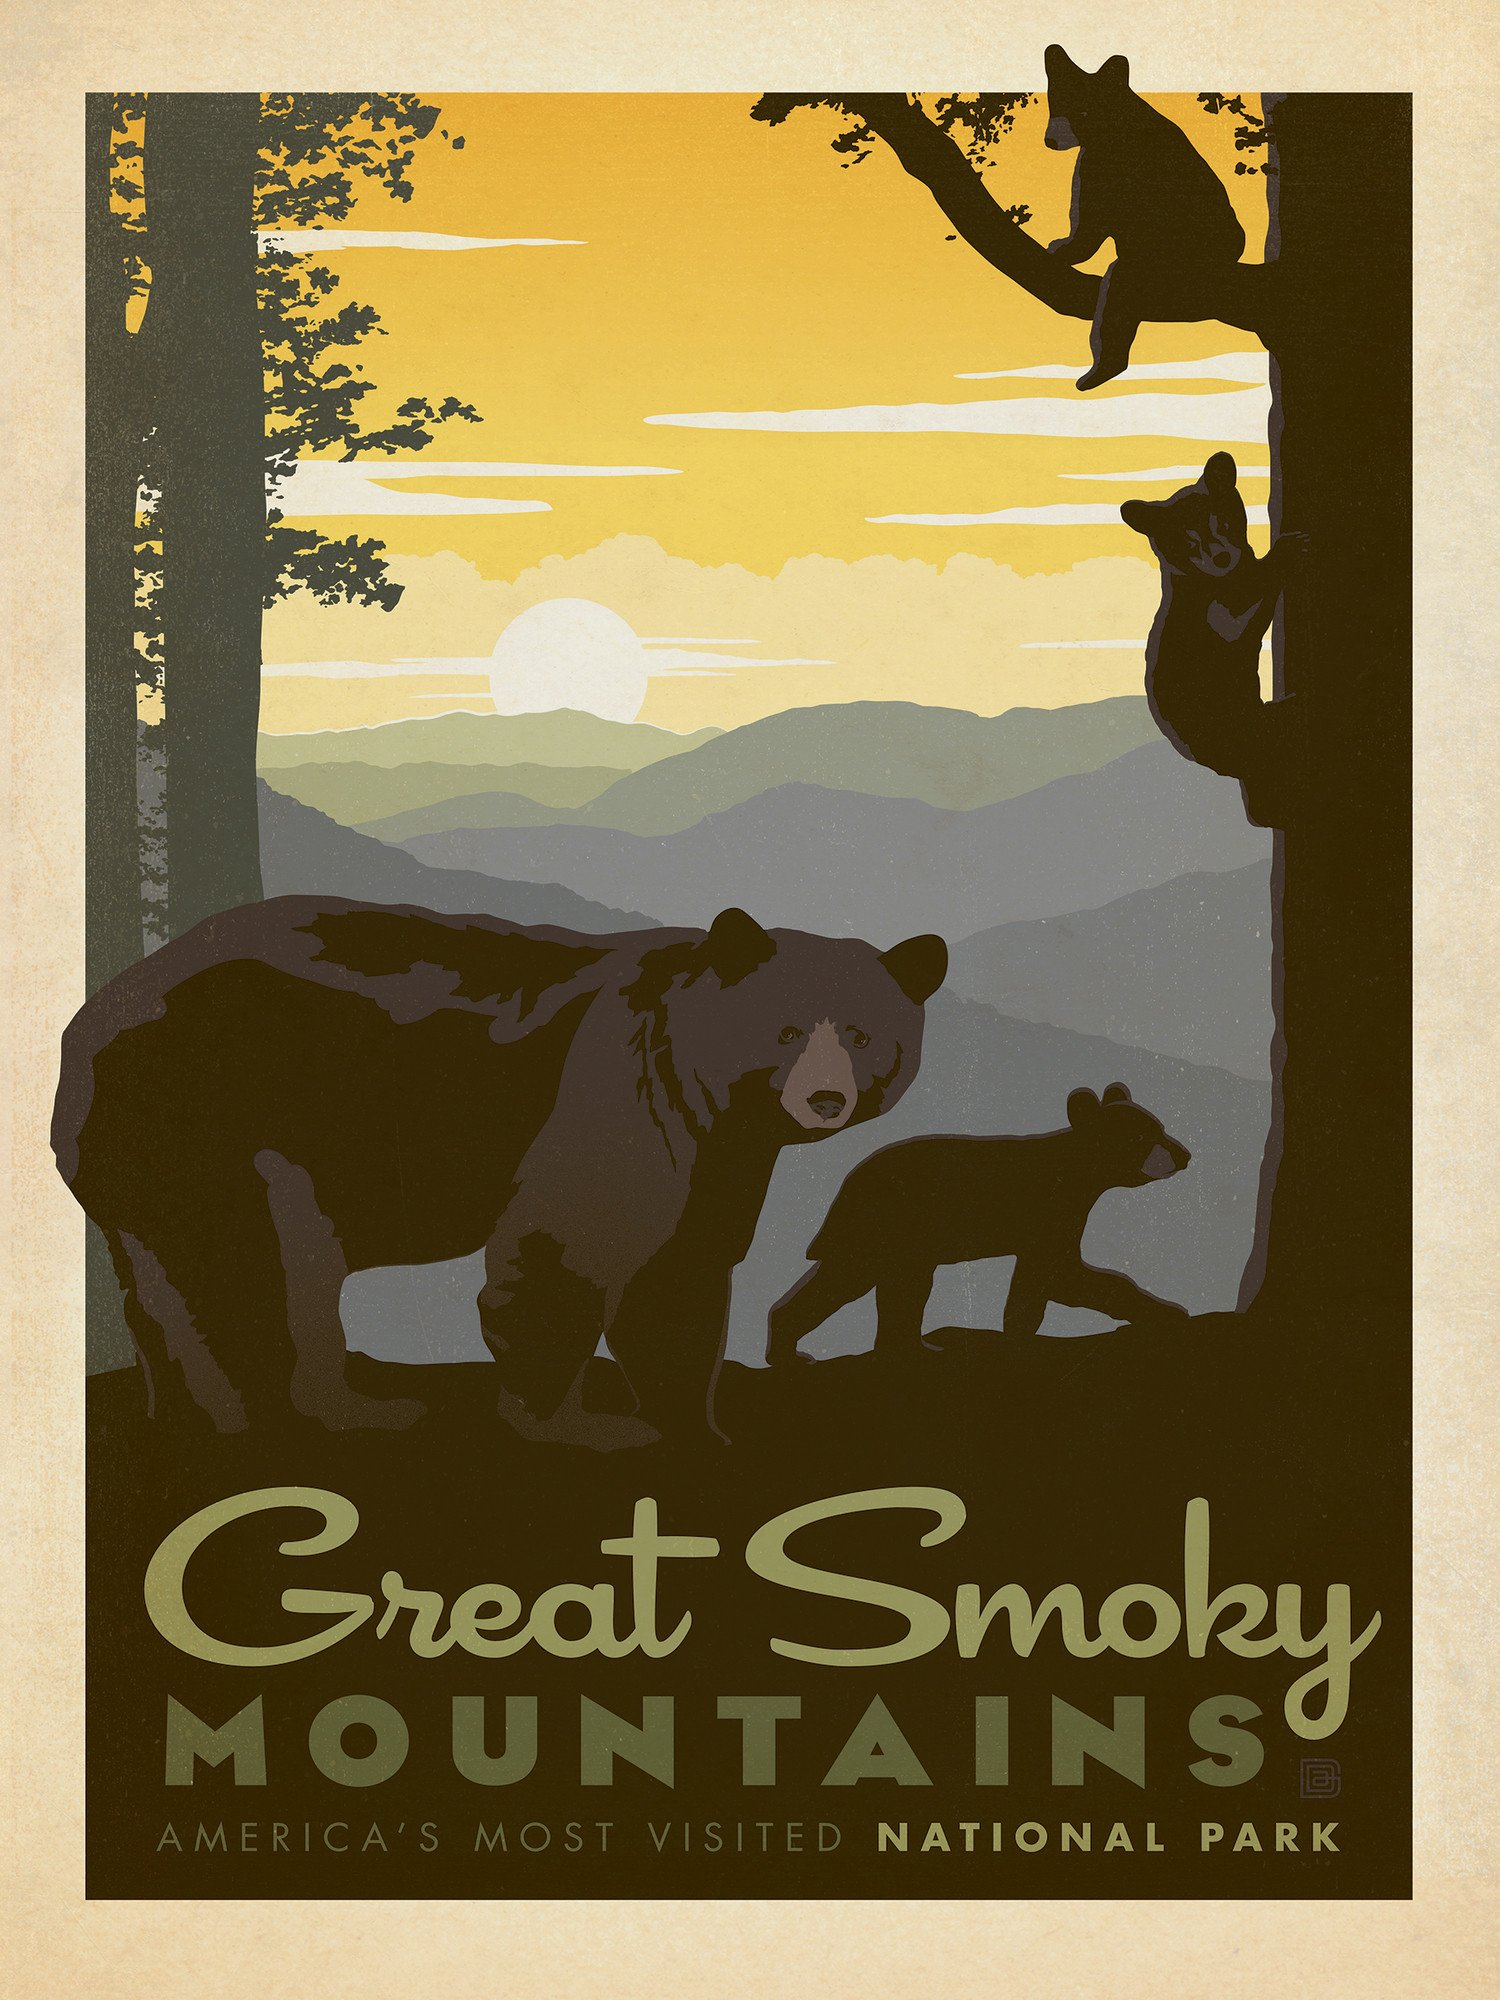 Great Smoky Mountains National Park Series 500 Piece Jigsaw Puzzle Smoky Mountains Art Mountain Art Print National Park Posters